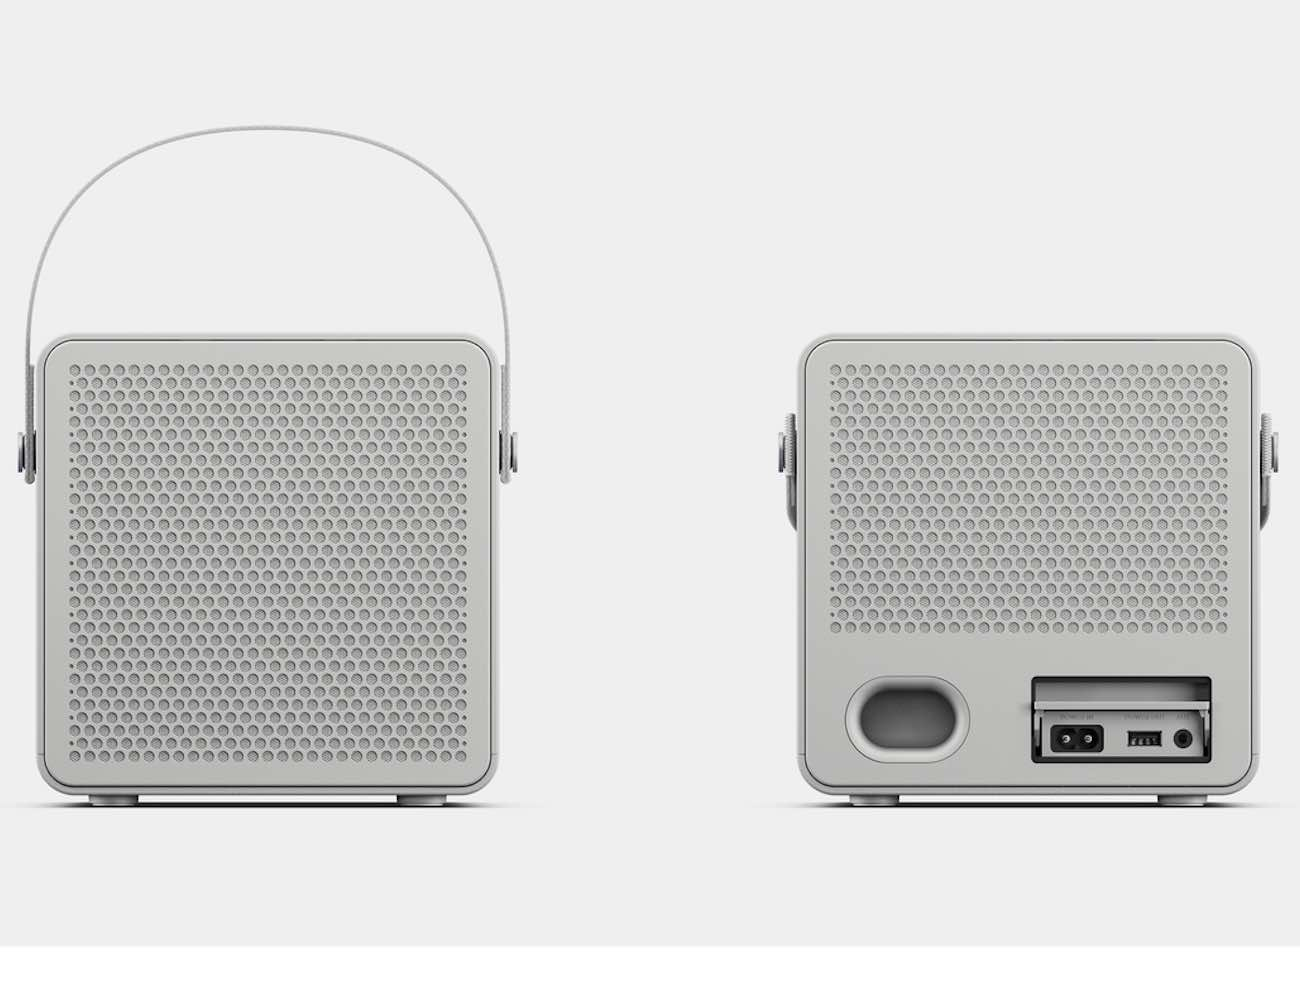 Urbanears Rålis Double Bluetooth Portable Speaker can connect to multiple devices